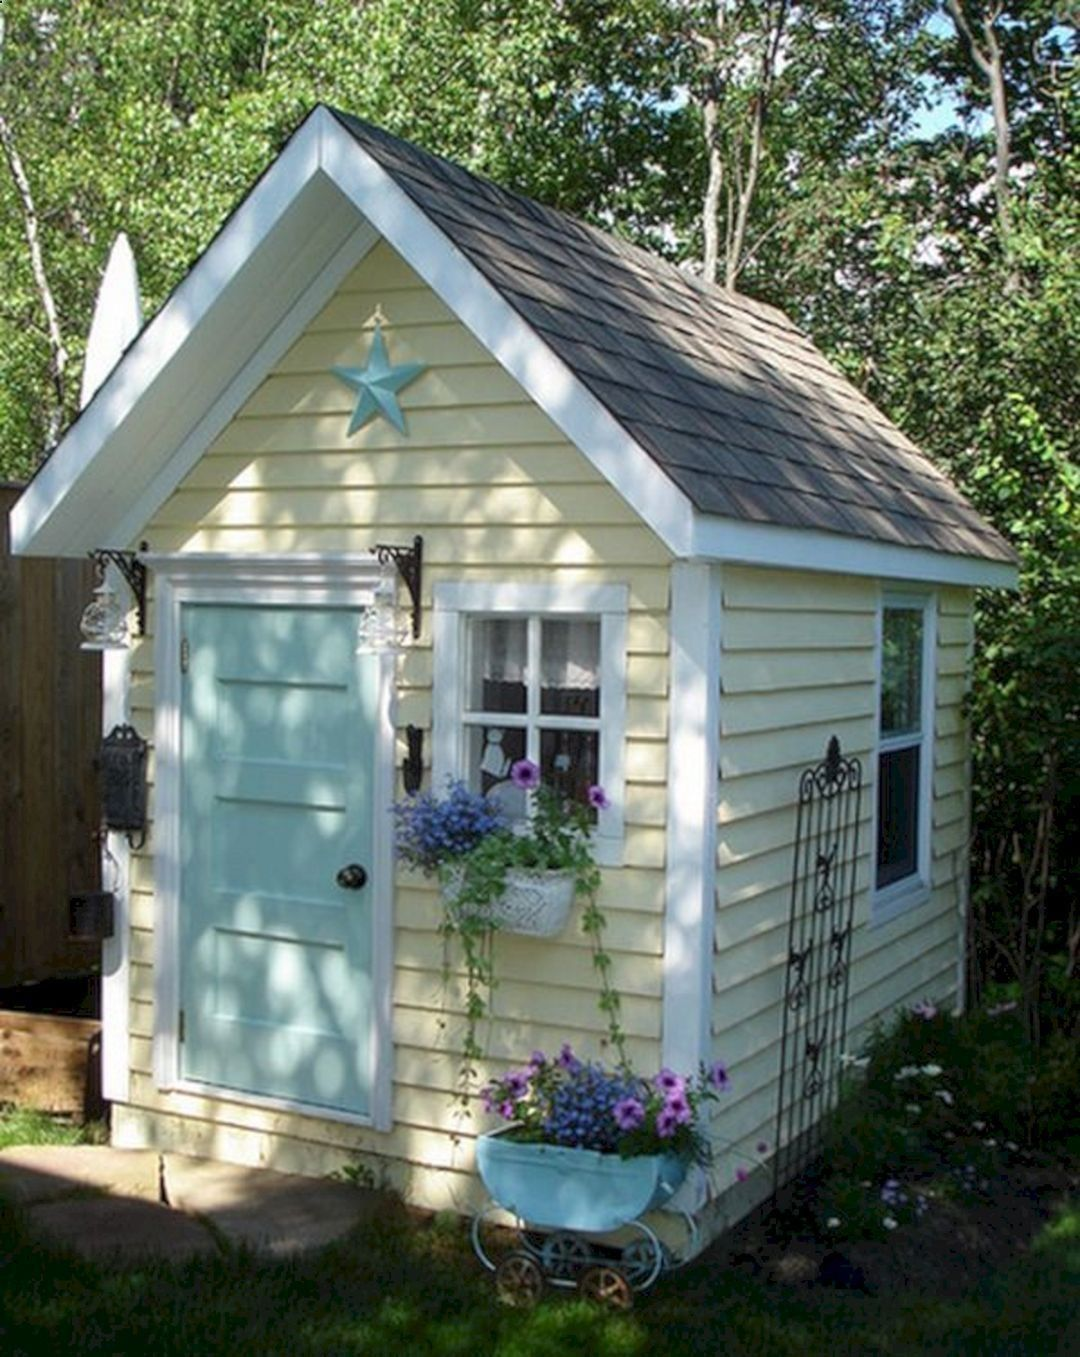 Shed Diy Inspiring 25 Excellent Diy Backyard Decoration With Painted Shed Ideas Decoredo Com Now You Can Build Backyard Cottage Painted Shed Play Houses